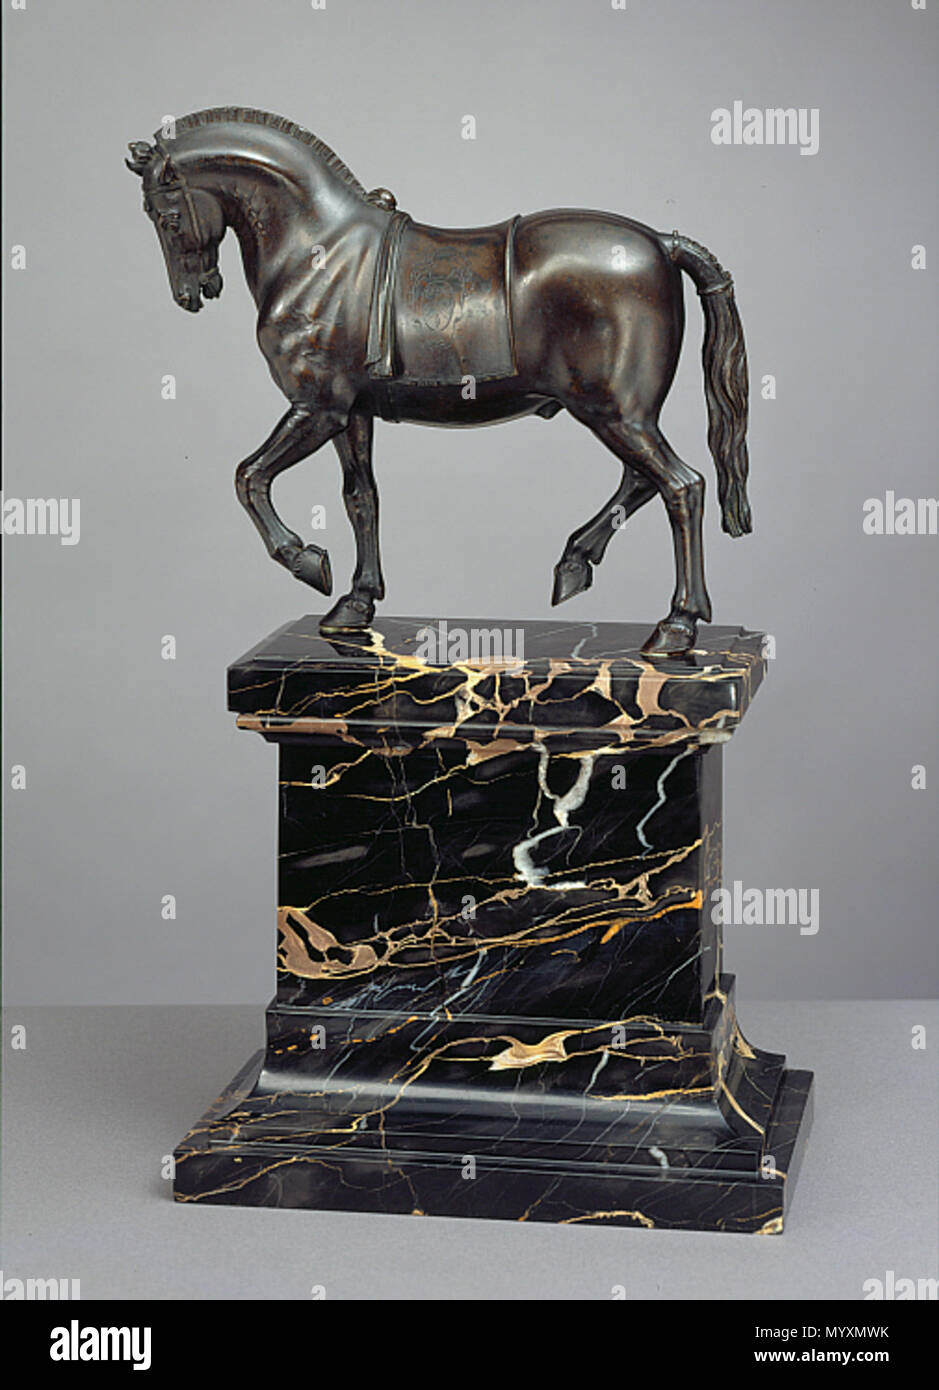 . Français : Jean de Bologne, Cheval au pas portant les armoiries des Vinta, 1610, bronze, 27.5 x 8.9 x 25.1 cm Clark Art Institute  . 1610. Giovanni Bologna (Giambologna) 41 Giambologna Walking Horse with Hogged Mane and Saddlecloth Bearing the Vinta Coat of Arms - Stock Image